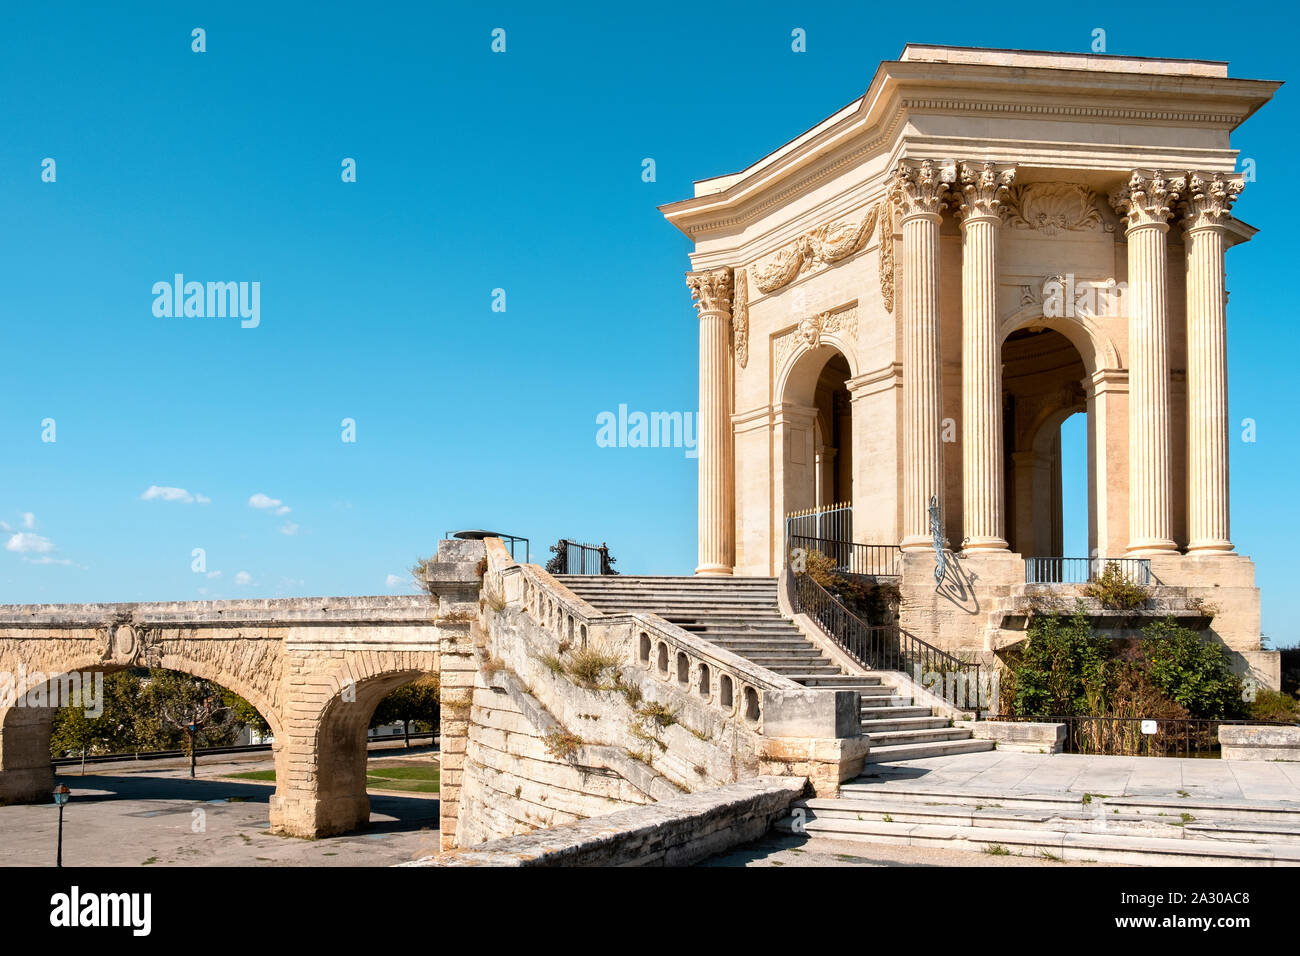 a view of the Promenade du Peyrou esplanade in Montpellier, France, highlighting its iconic neoclassical water tower on the left, and the Saint Clemen Stock Photo